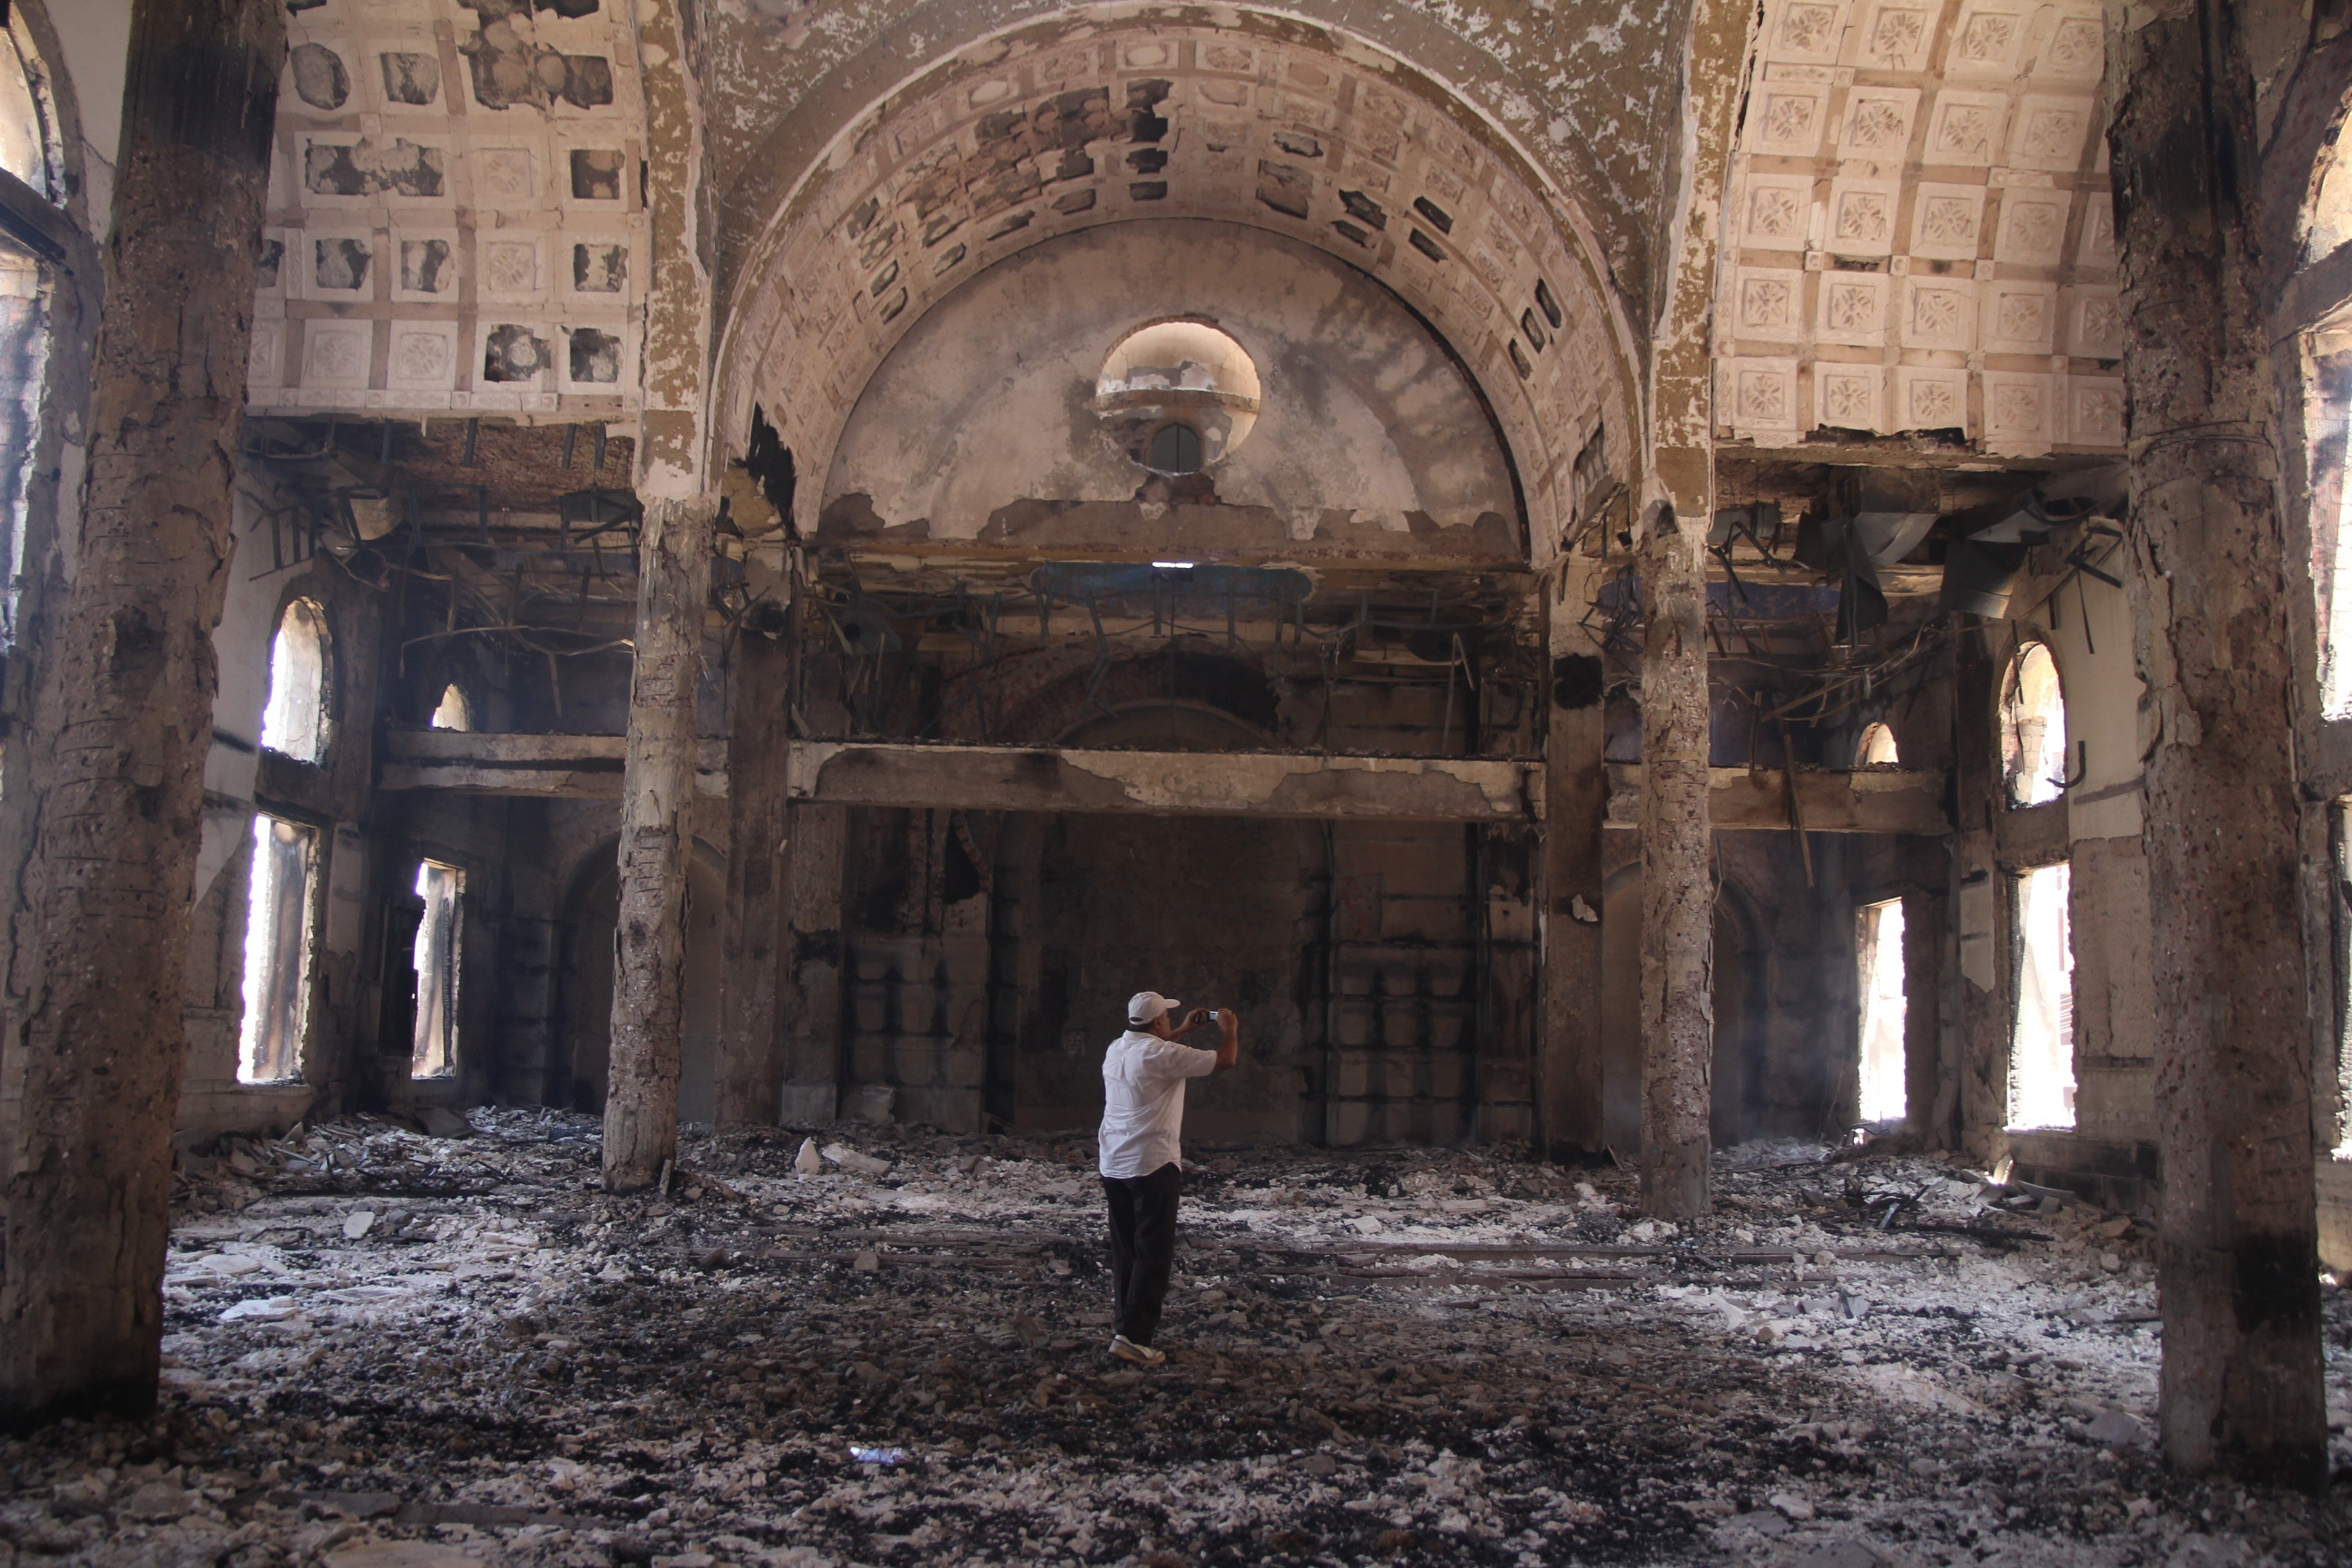 Damaged interior of St. Moussa Church in Minya bears witness to wave of destruction that has followed military regime's dispersal of two camps loyal to Egypt's ousted president.